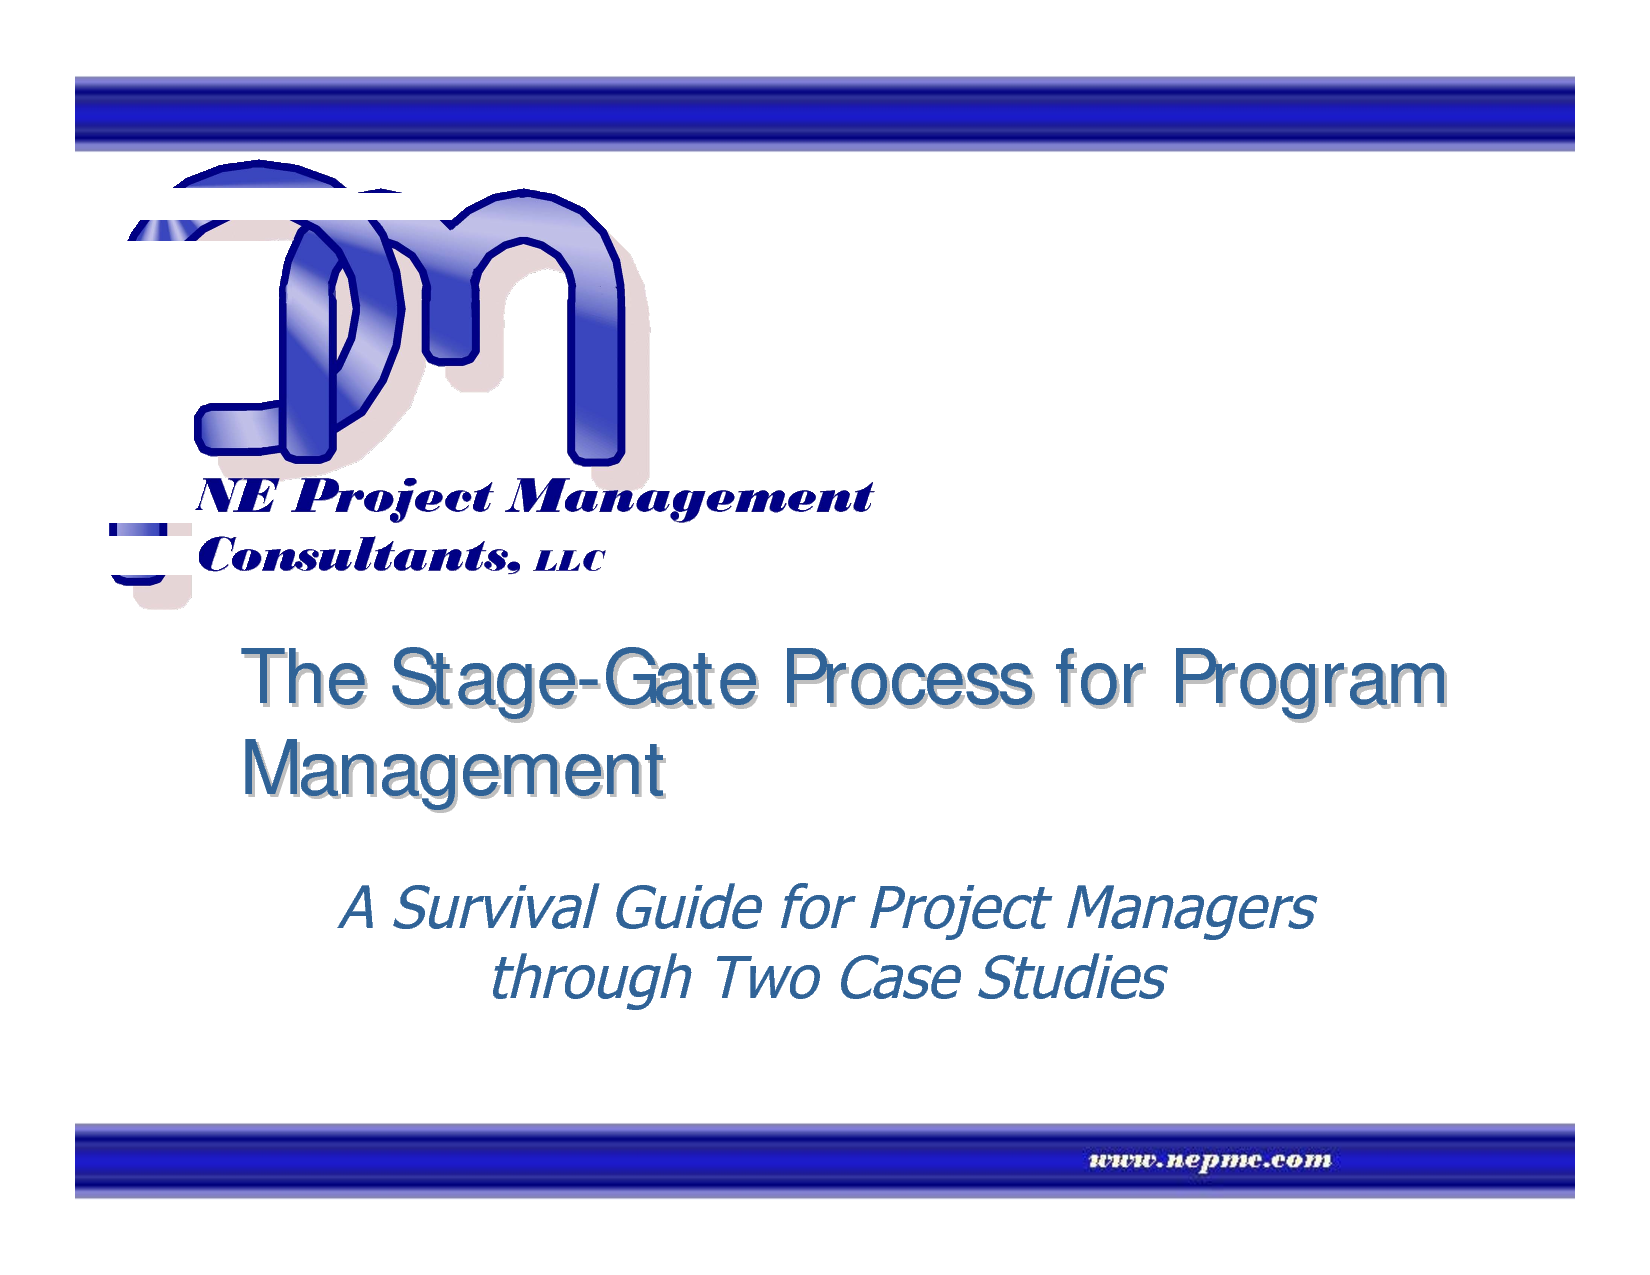 Program Management Process Templates The Stage Gate For A Survival